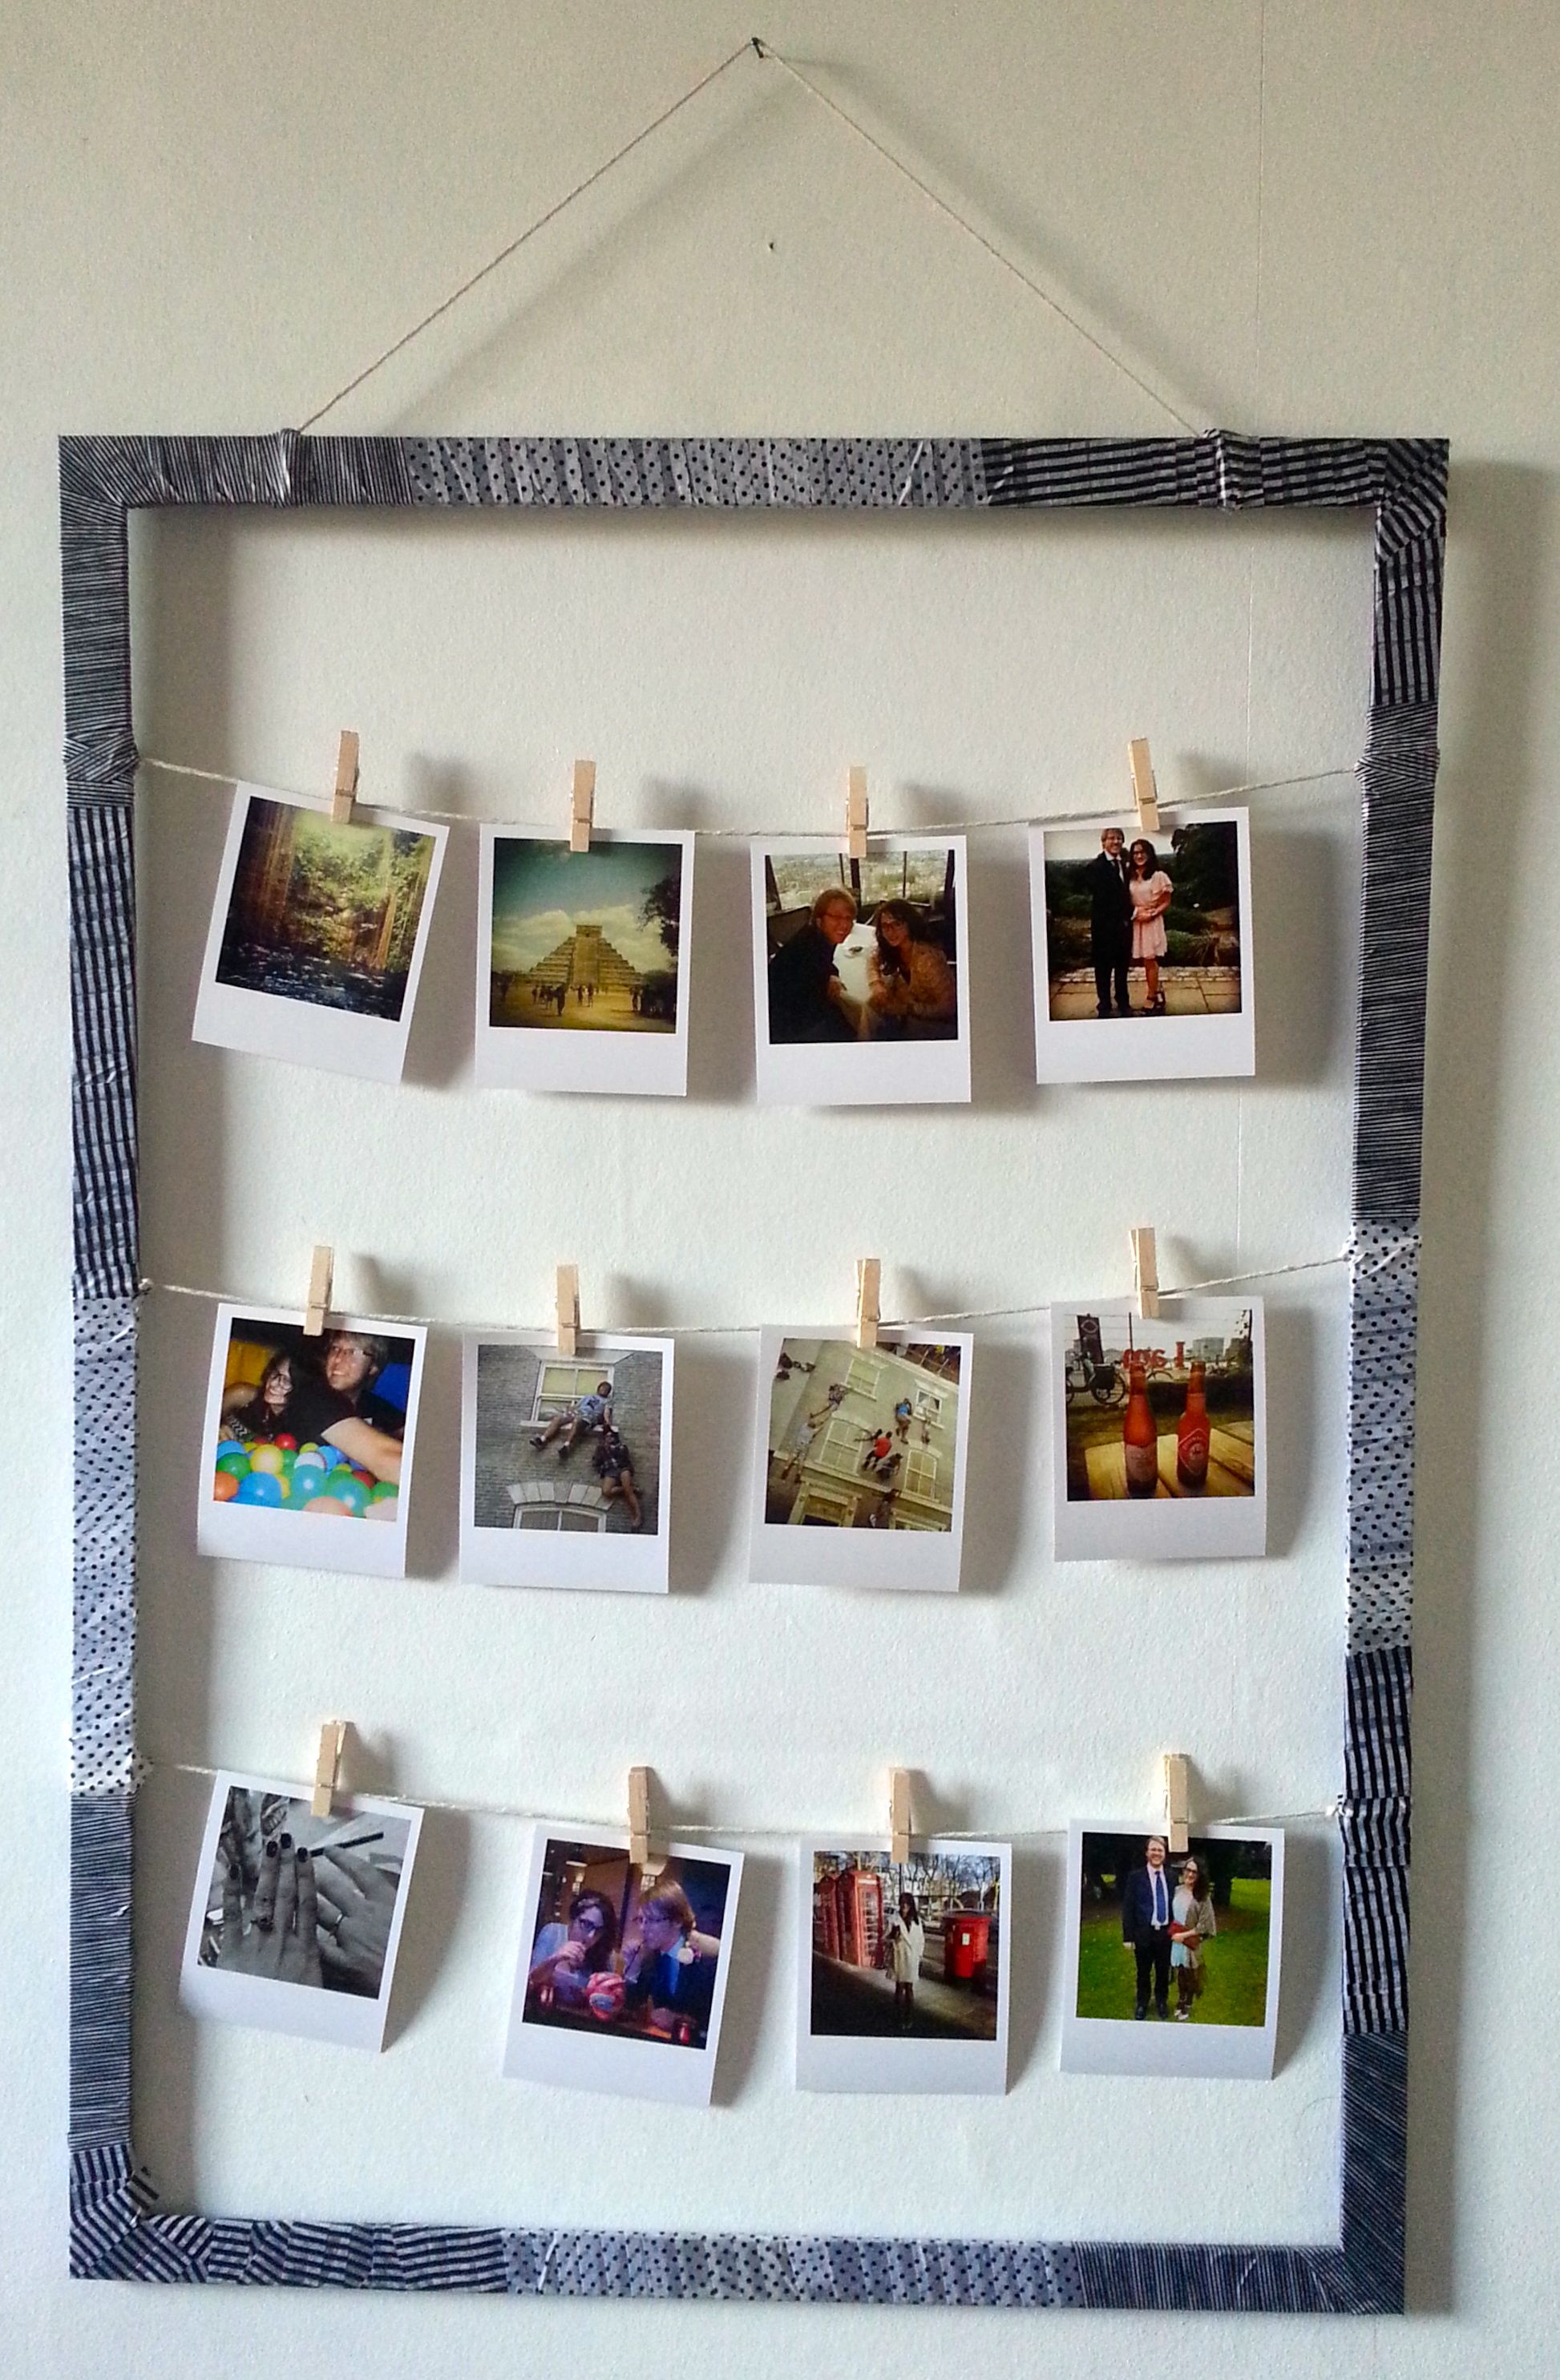 Sightly Diy Frame Patterned Tape To Display Polaroid Style S Finishedversion Project Polaroid Style Display Diy Frame Easel Diy Frame Card Box photos Diy Picture Frame